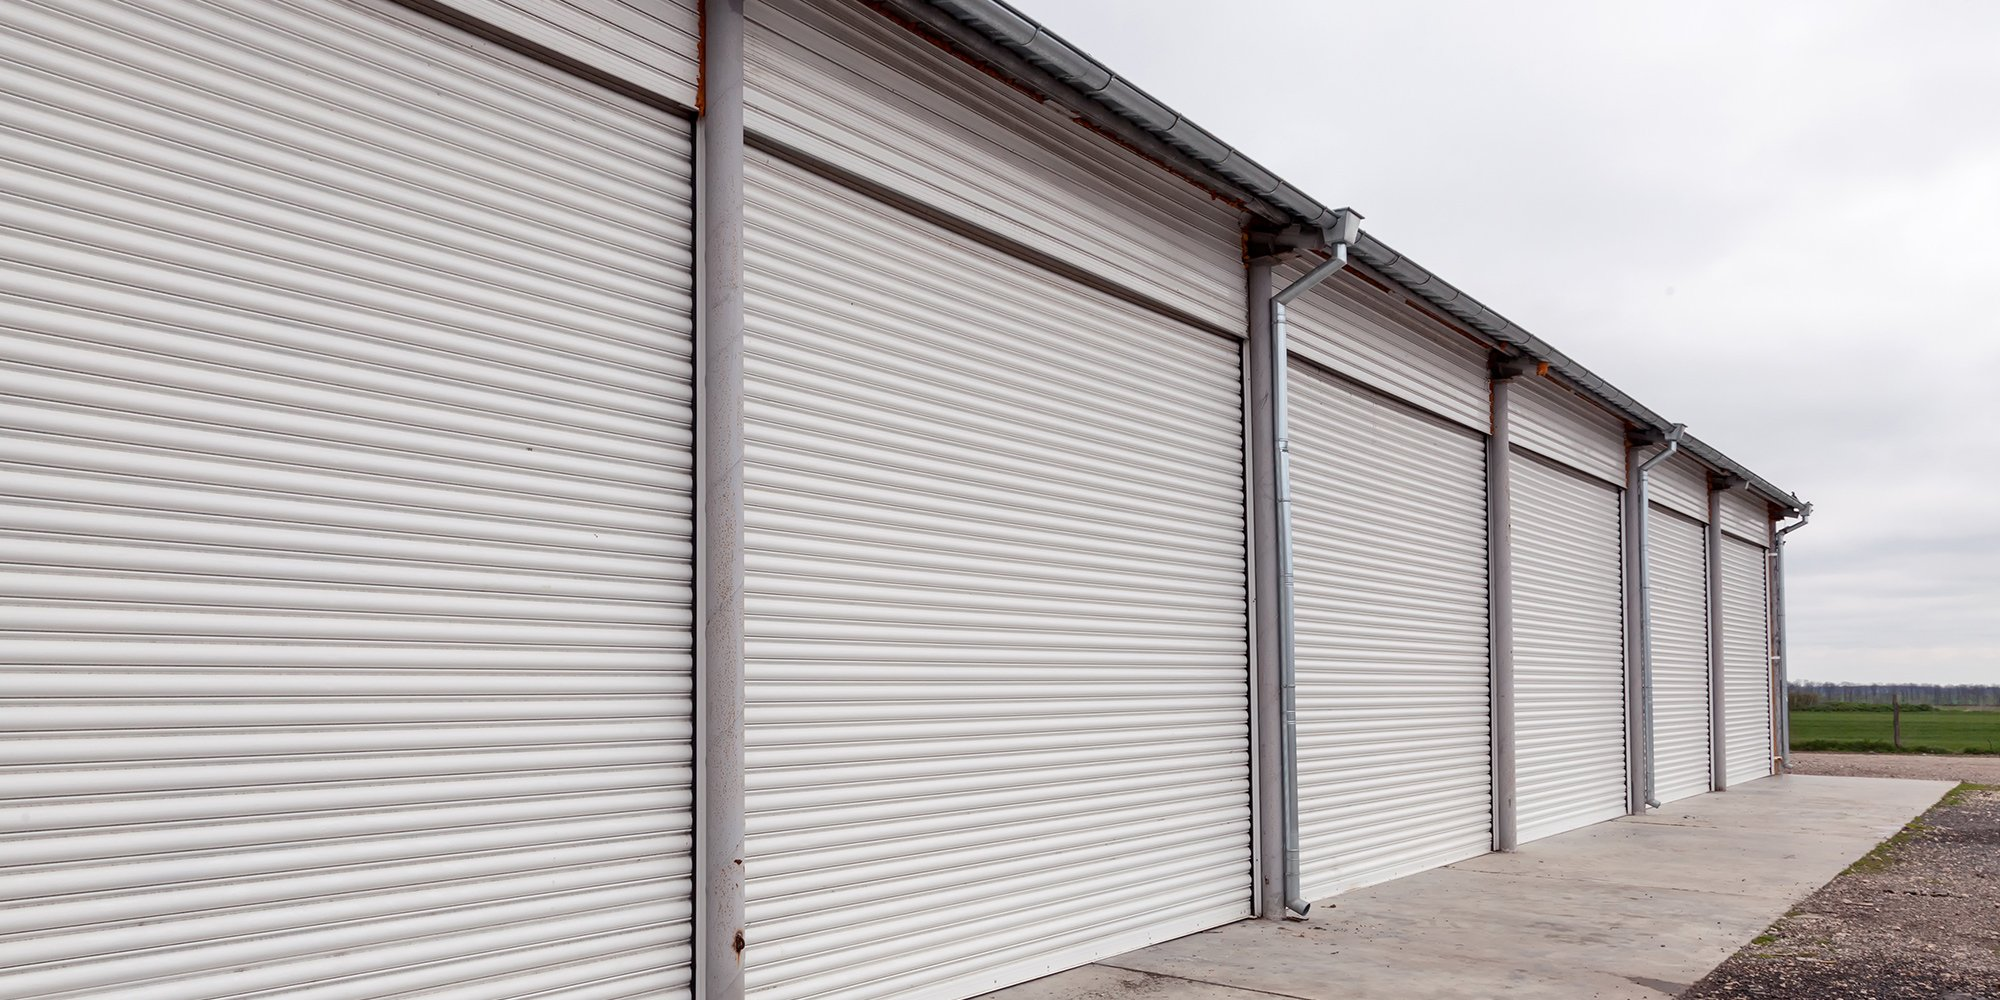 View of installed roller shutter by S&B Roller Shutters